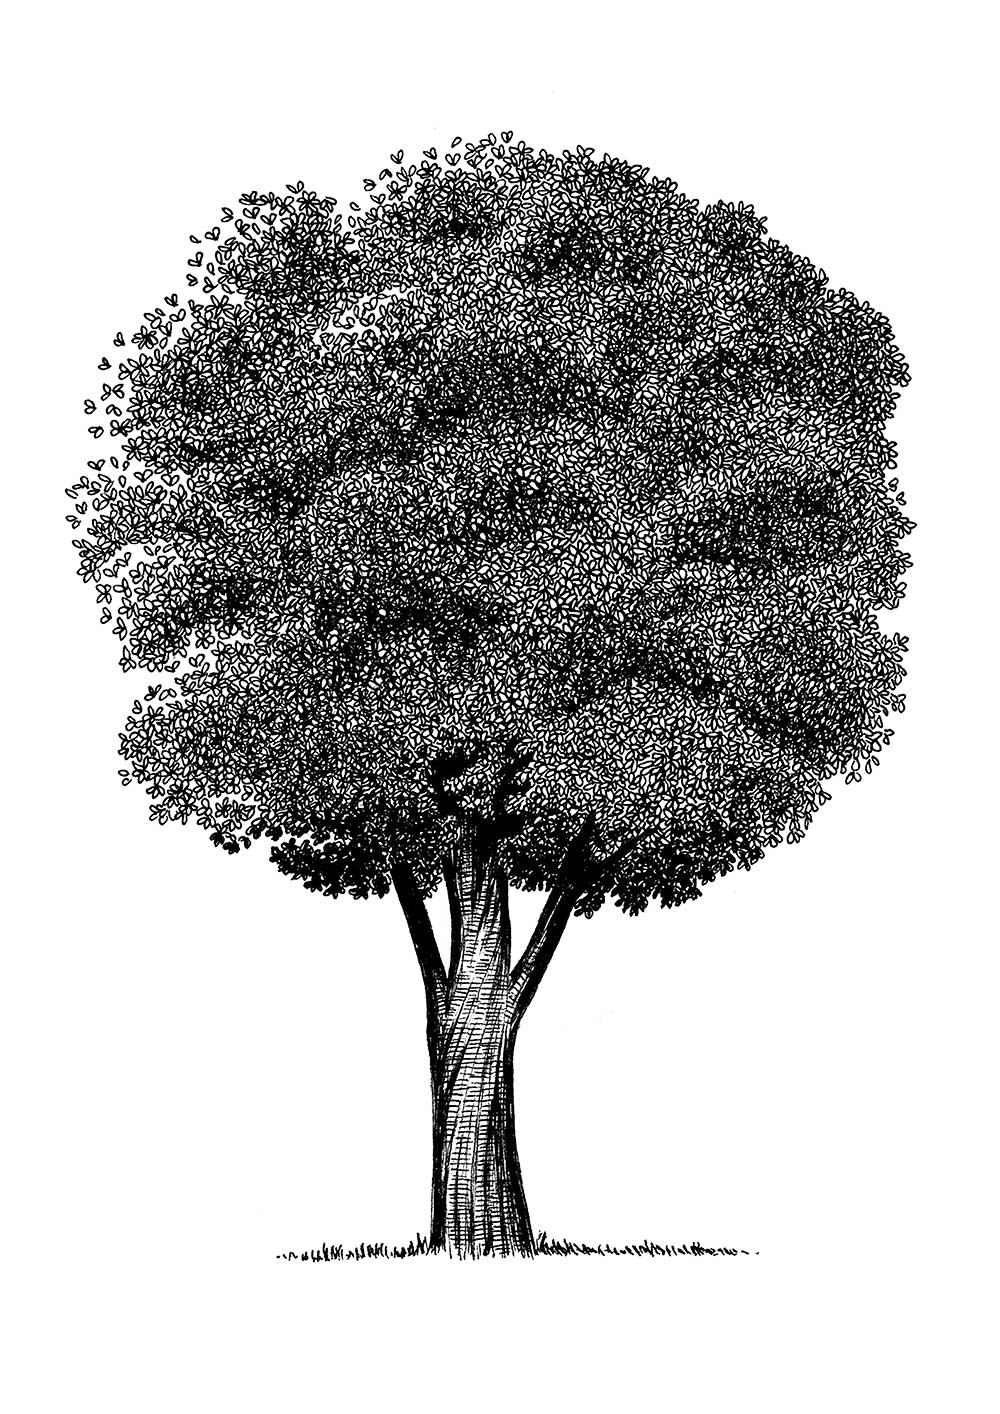 pen and ink illustration of a tree with butterflies by sally barnett